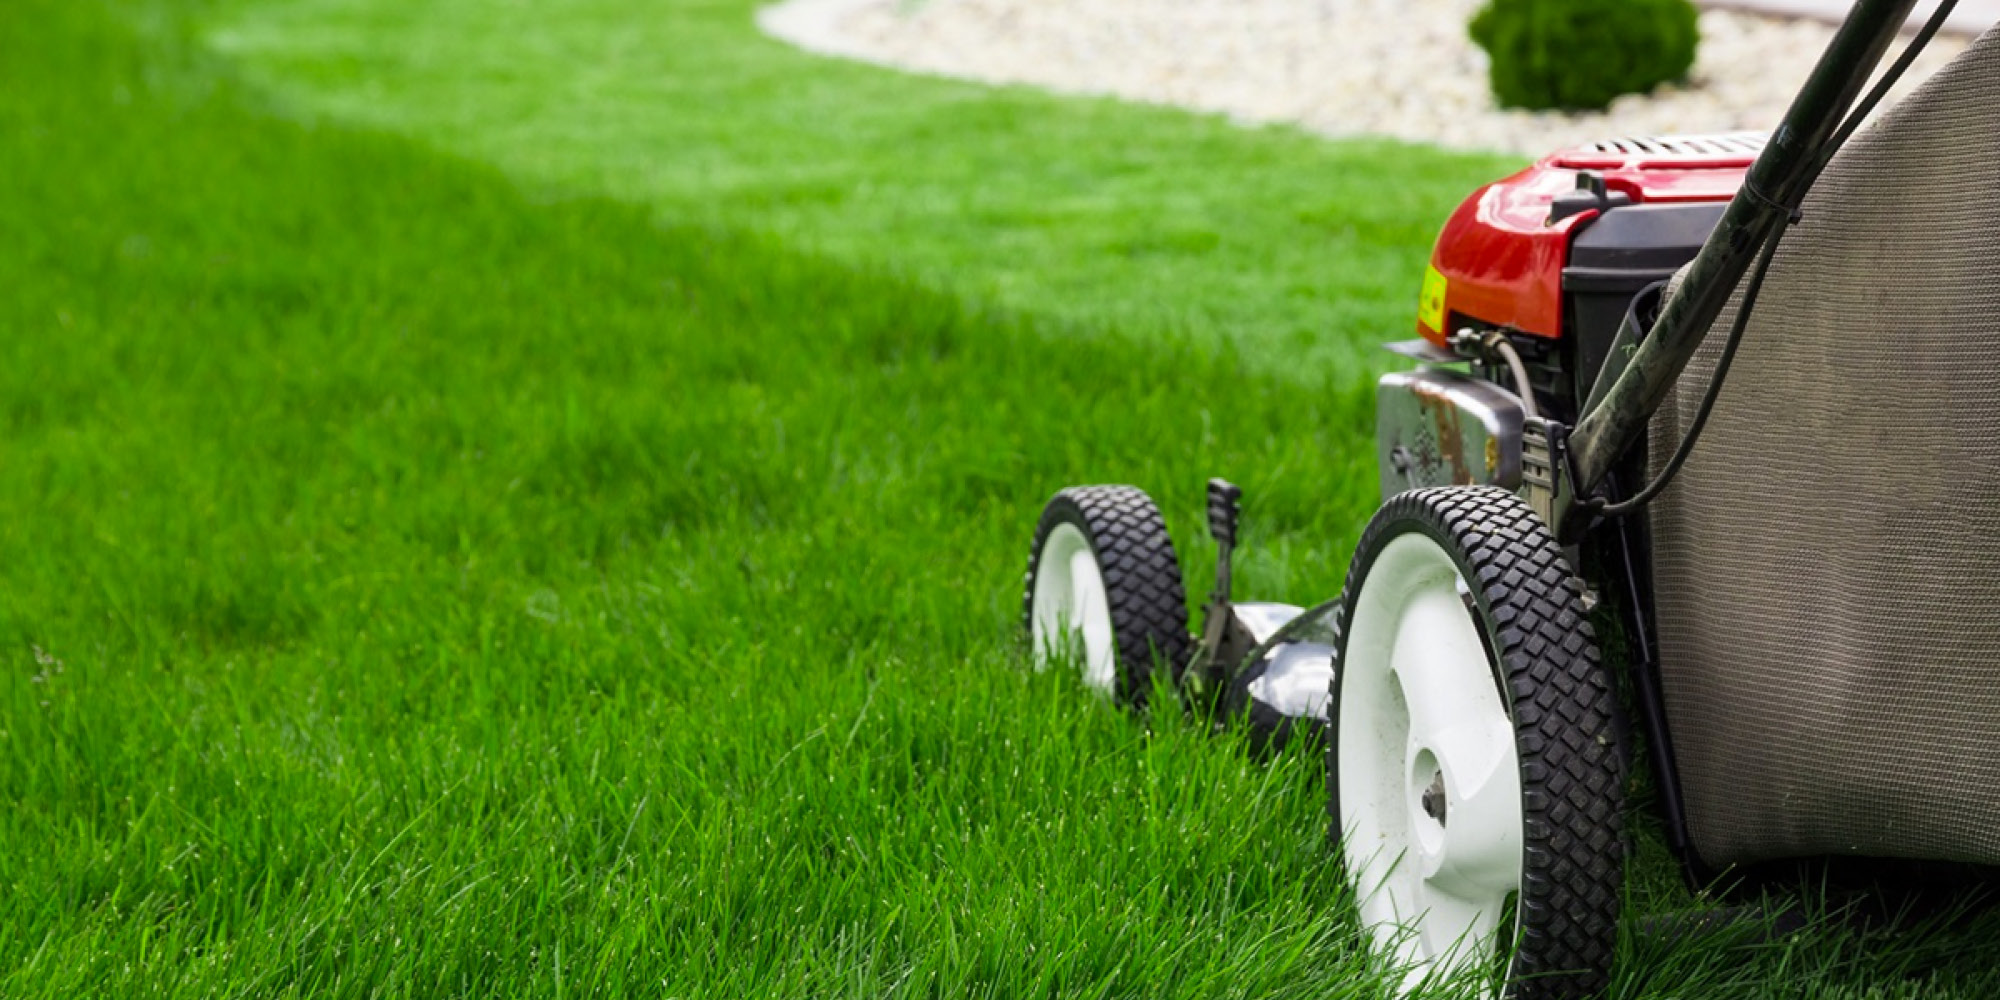 Lawn care service barefoot in the grass landscaping statesboro ga want you lawn to look lush and beautiful all season long without the hassle of doing it yourself whether you are a homeowner or a commercial property solutioingenieria Gallery